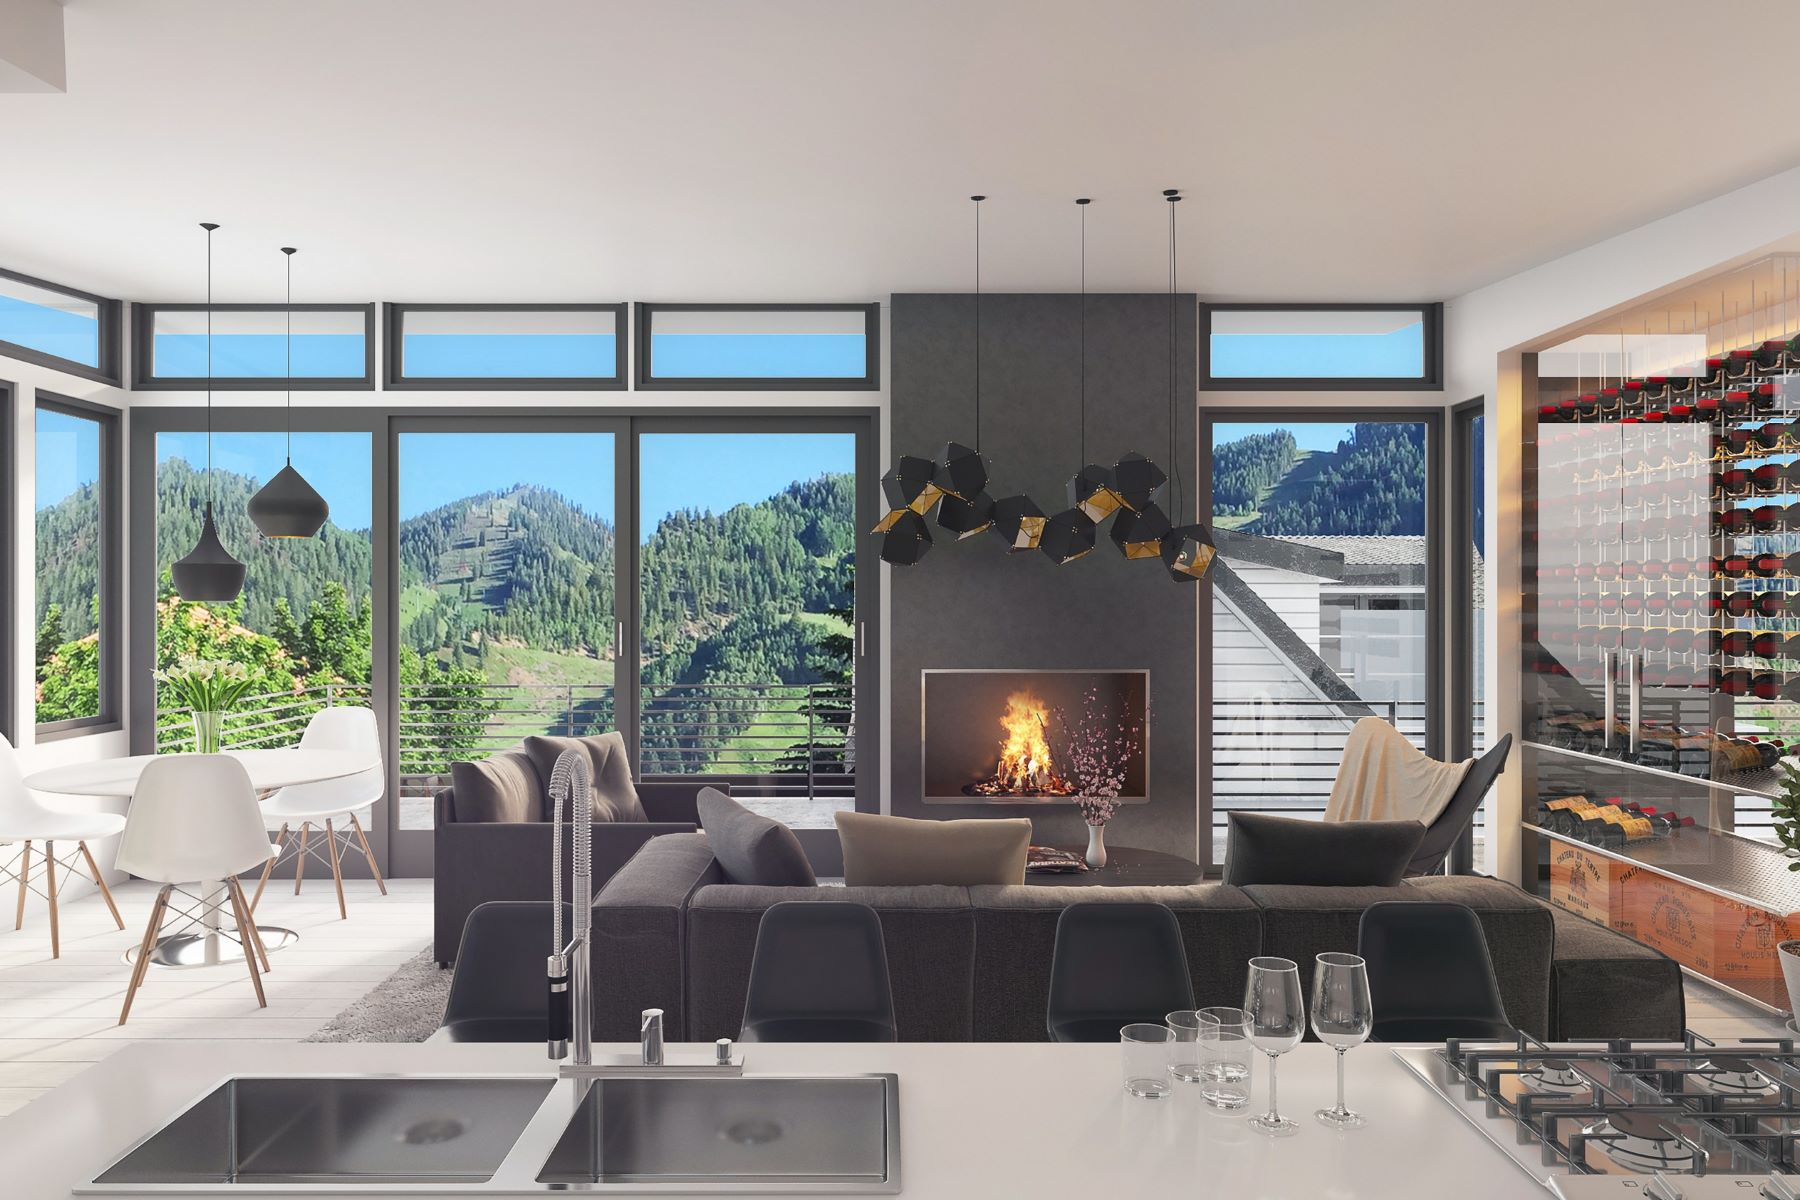 複式單位 為 出售 在 Modern West End Duplex 203 North Monarch Street West End, Aspen, 科羅拉多州, 81611 美國